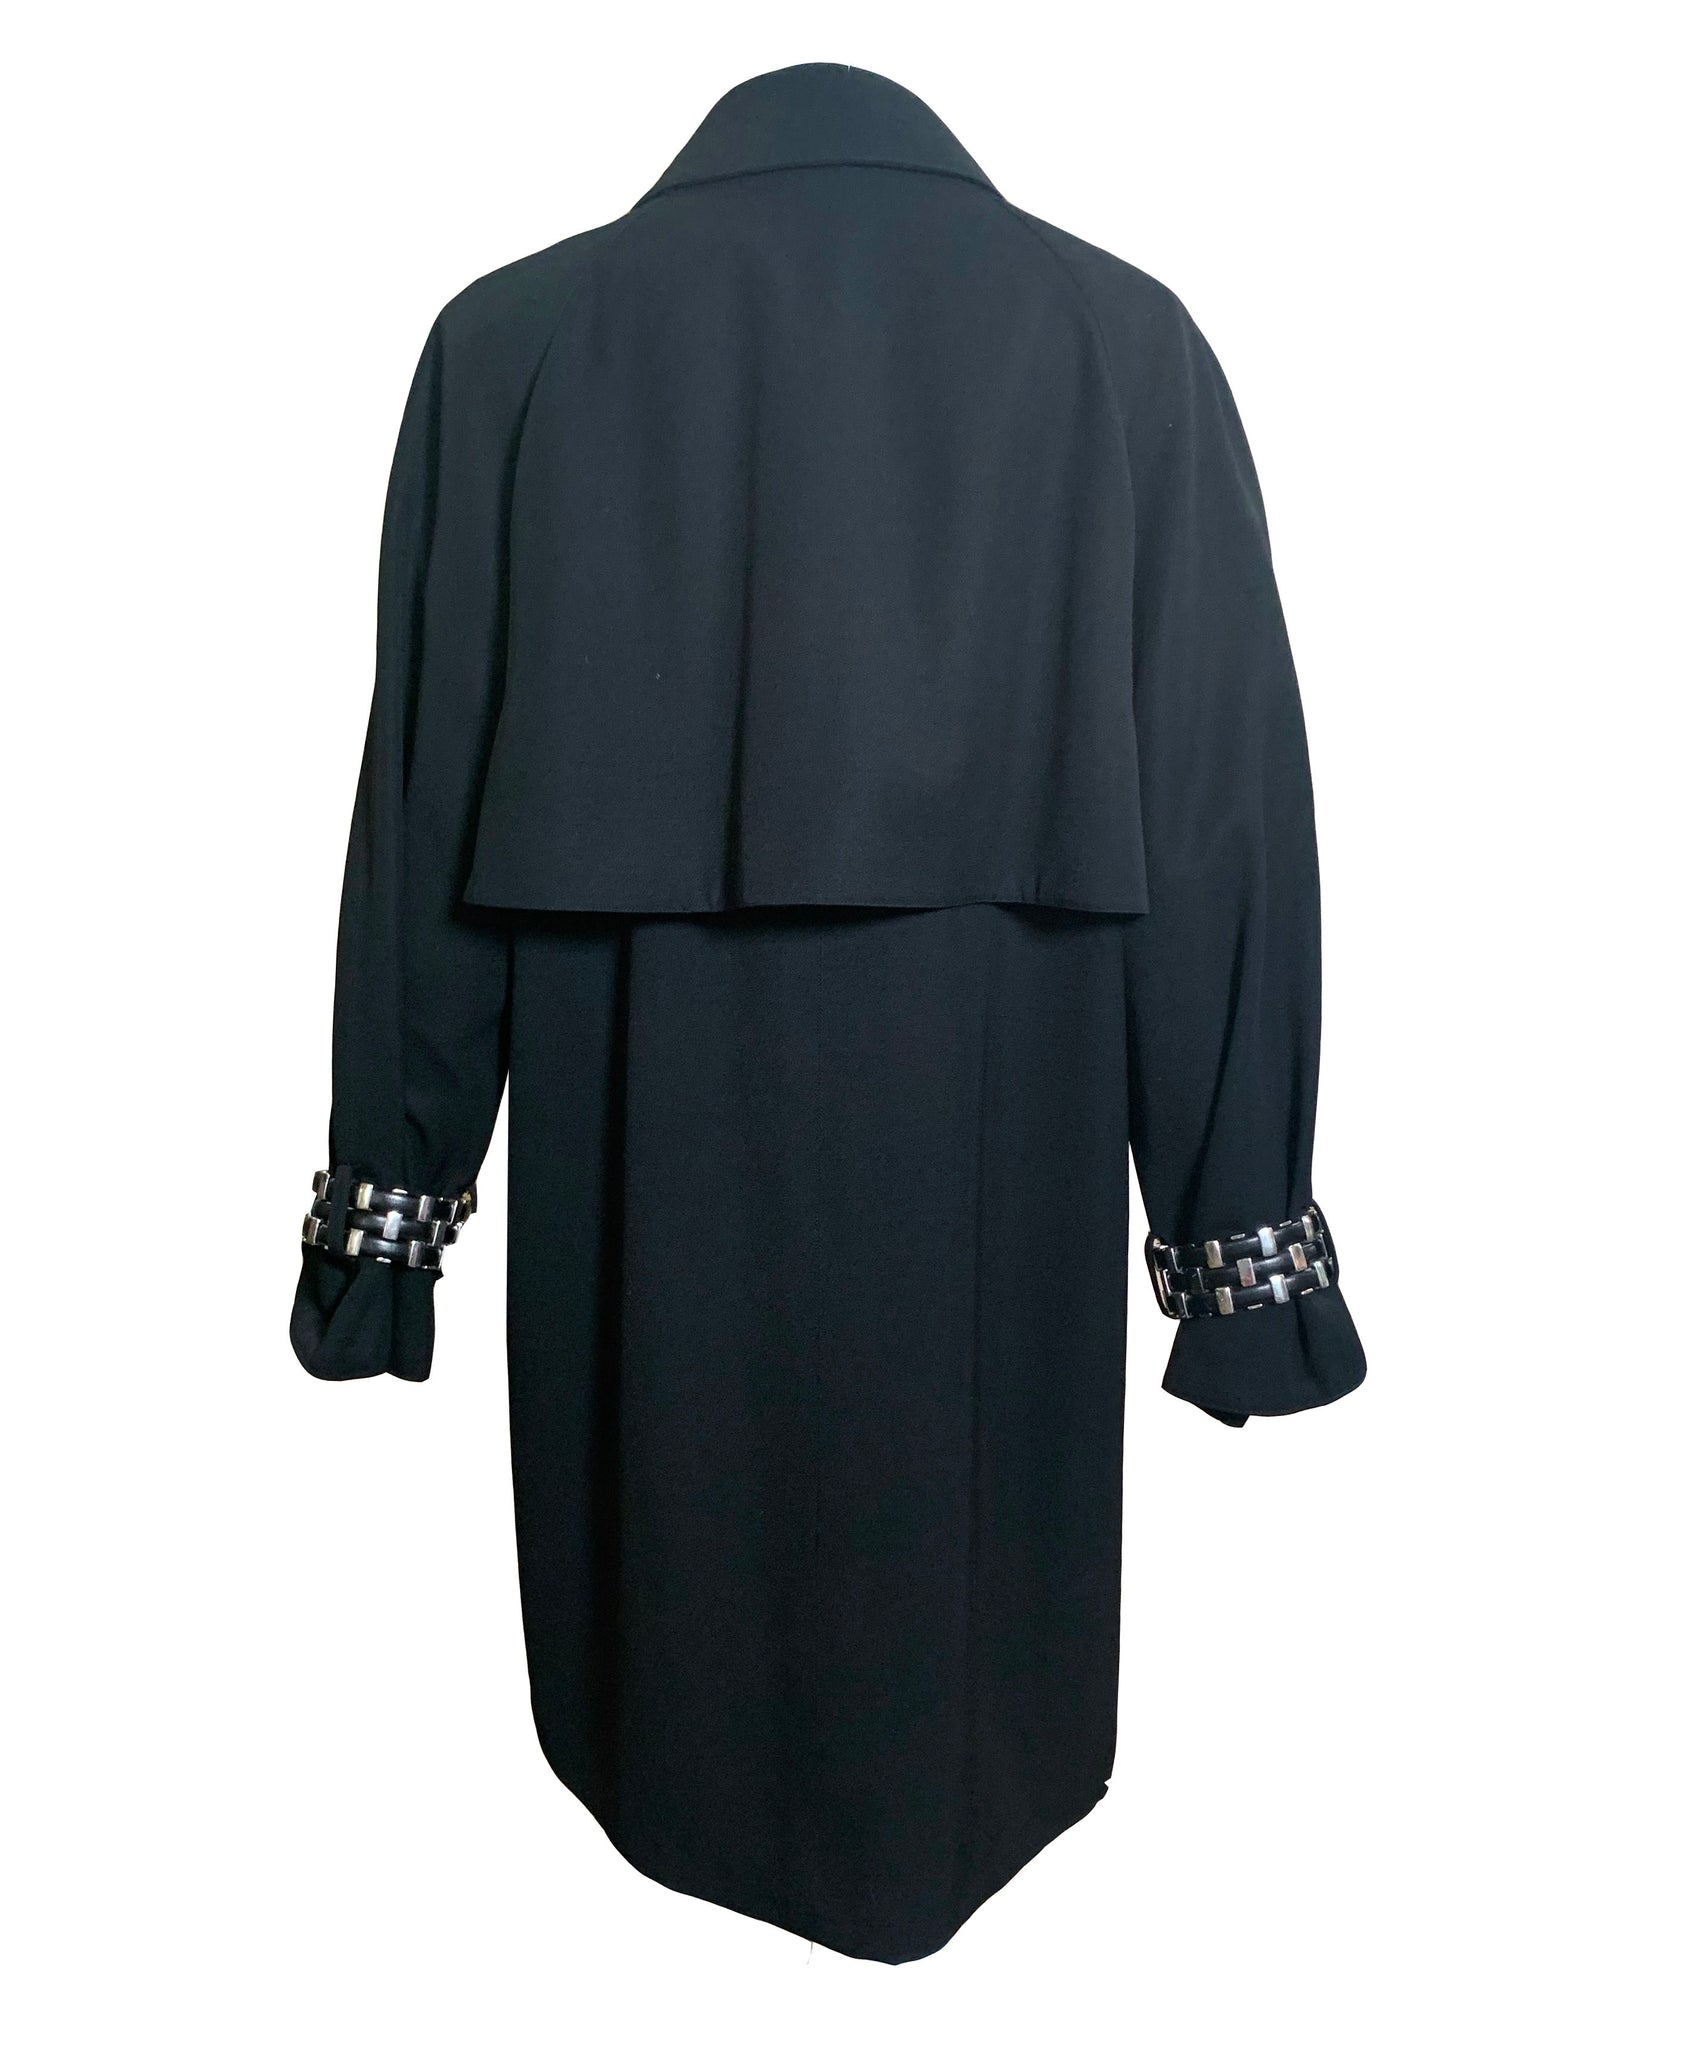 Claude Montana 90s Black Studded Trench Coat BACK 2 of 4